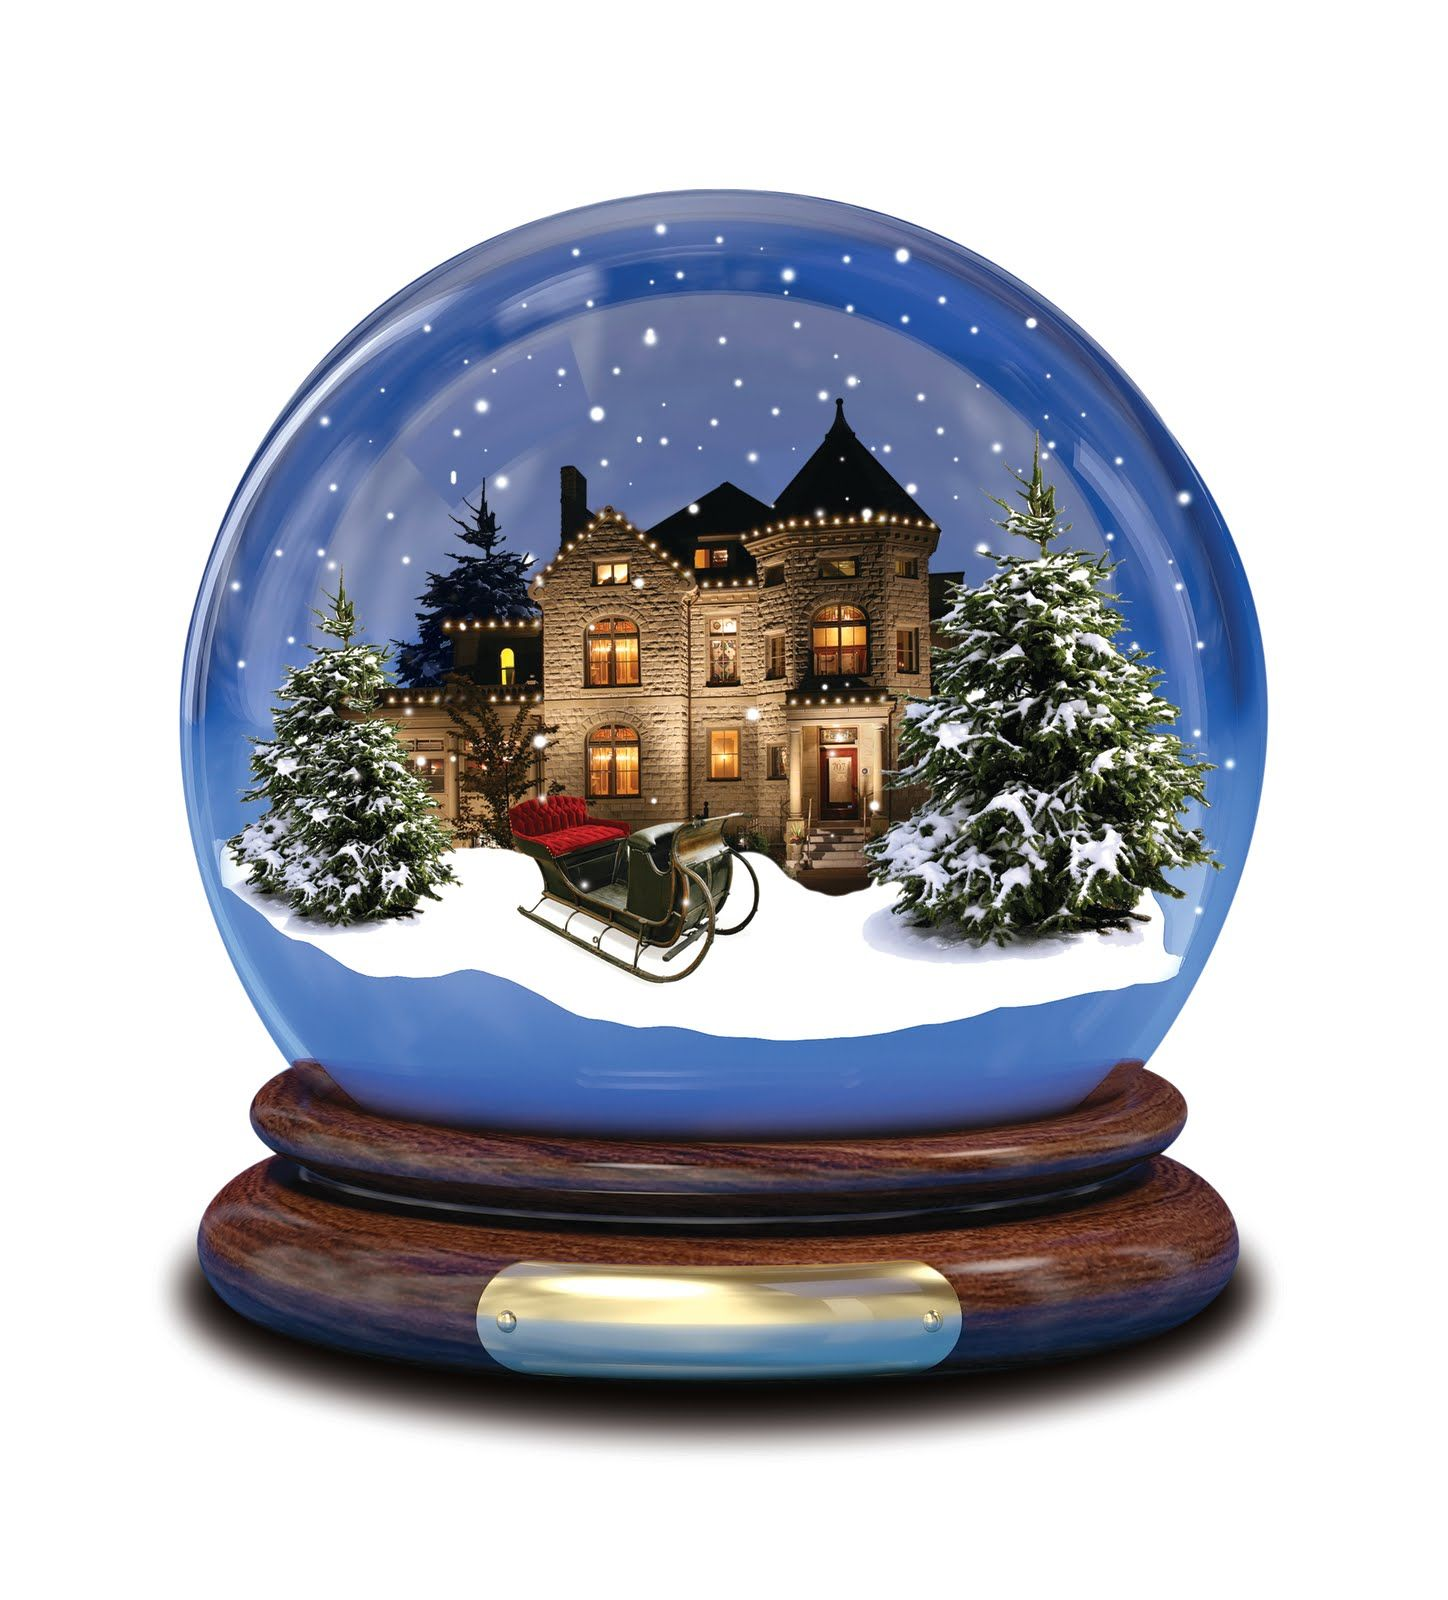 Water Globe & Snow Globe Assembly Guide | Globe, Snow and Google ...